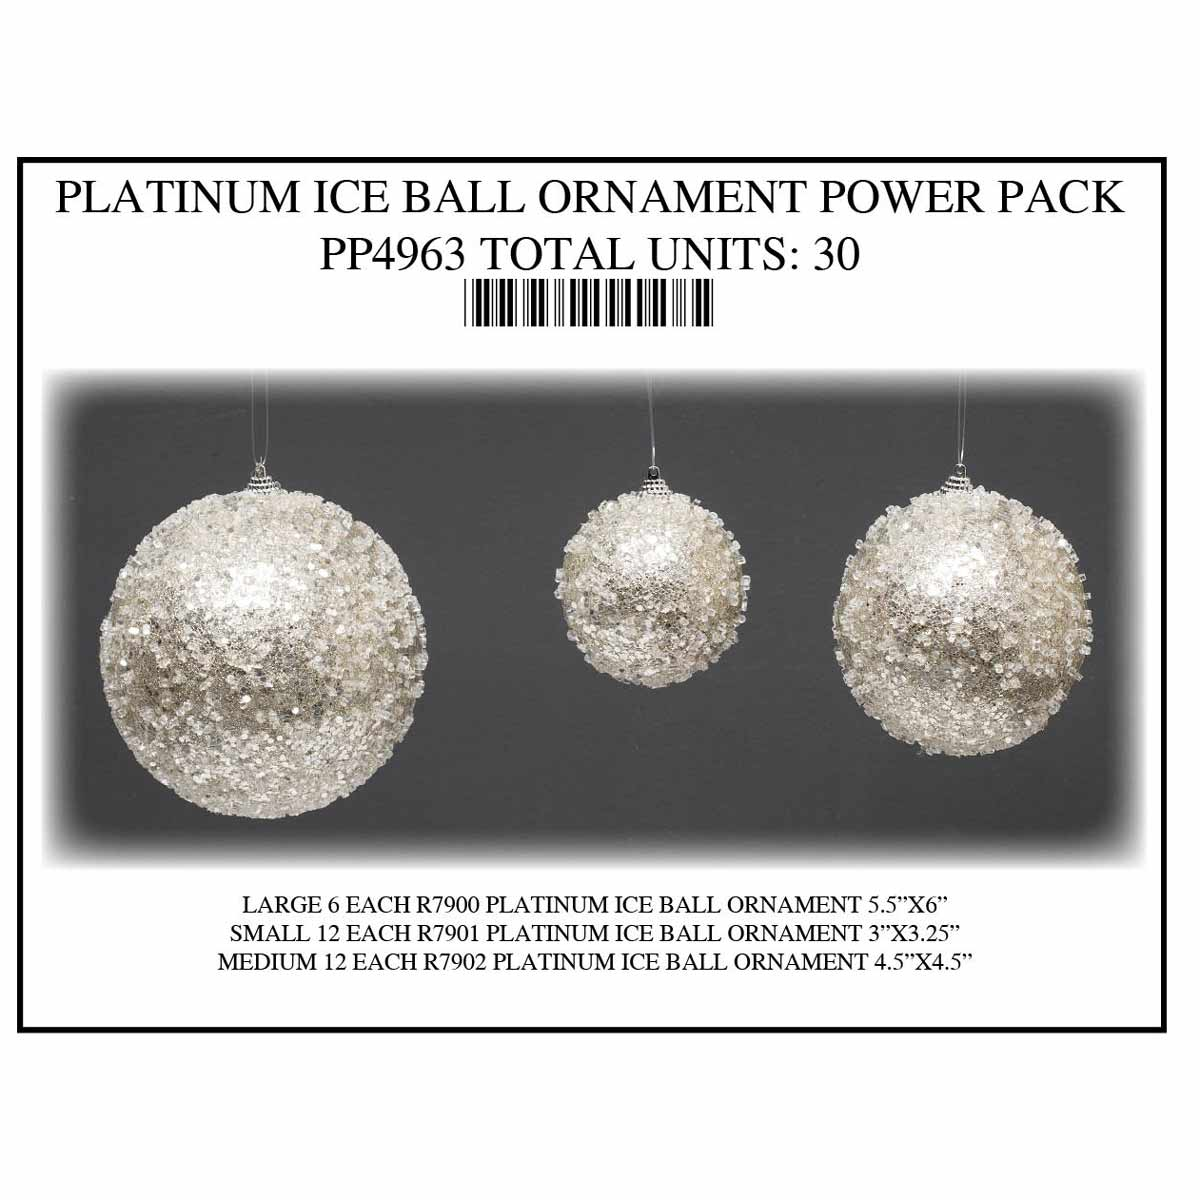 PLATINUM ICED BALL ORNAMENT POWER PACK 30 UNITS PP4963